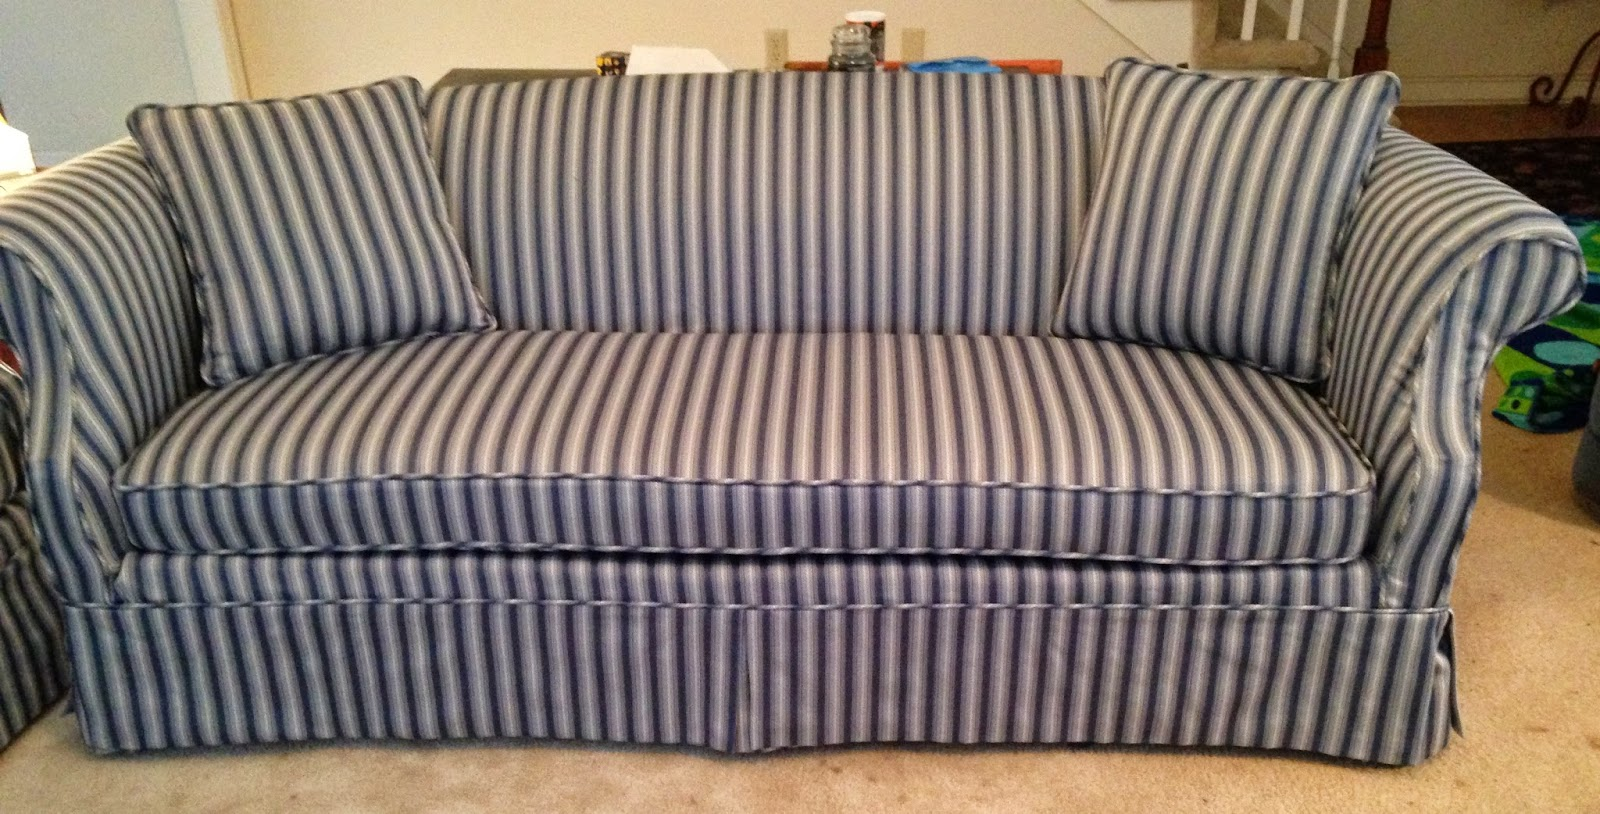 Blue And White Striped Chair Pam Morris Sews Striped Traditional Sofa And Loveseat